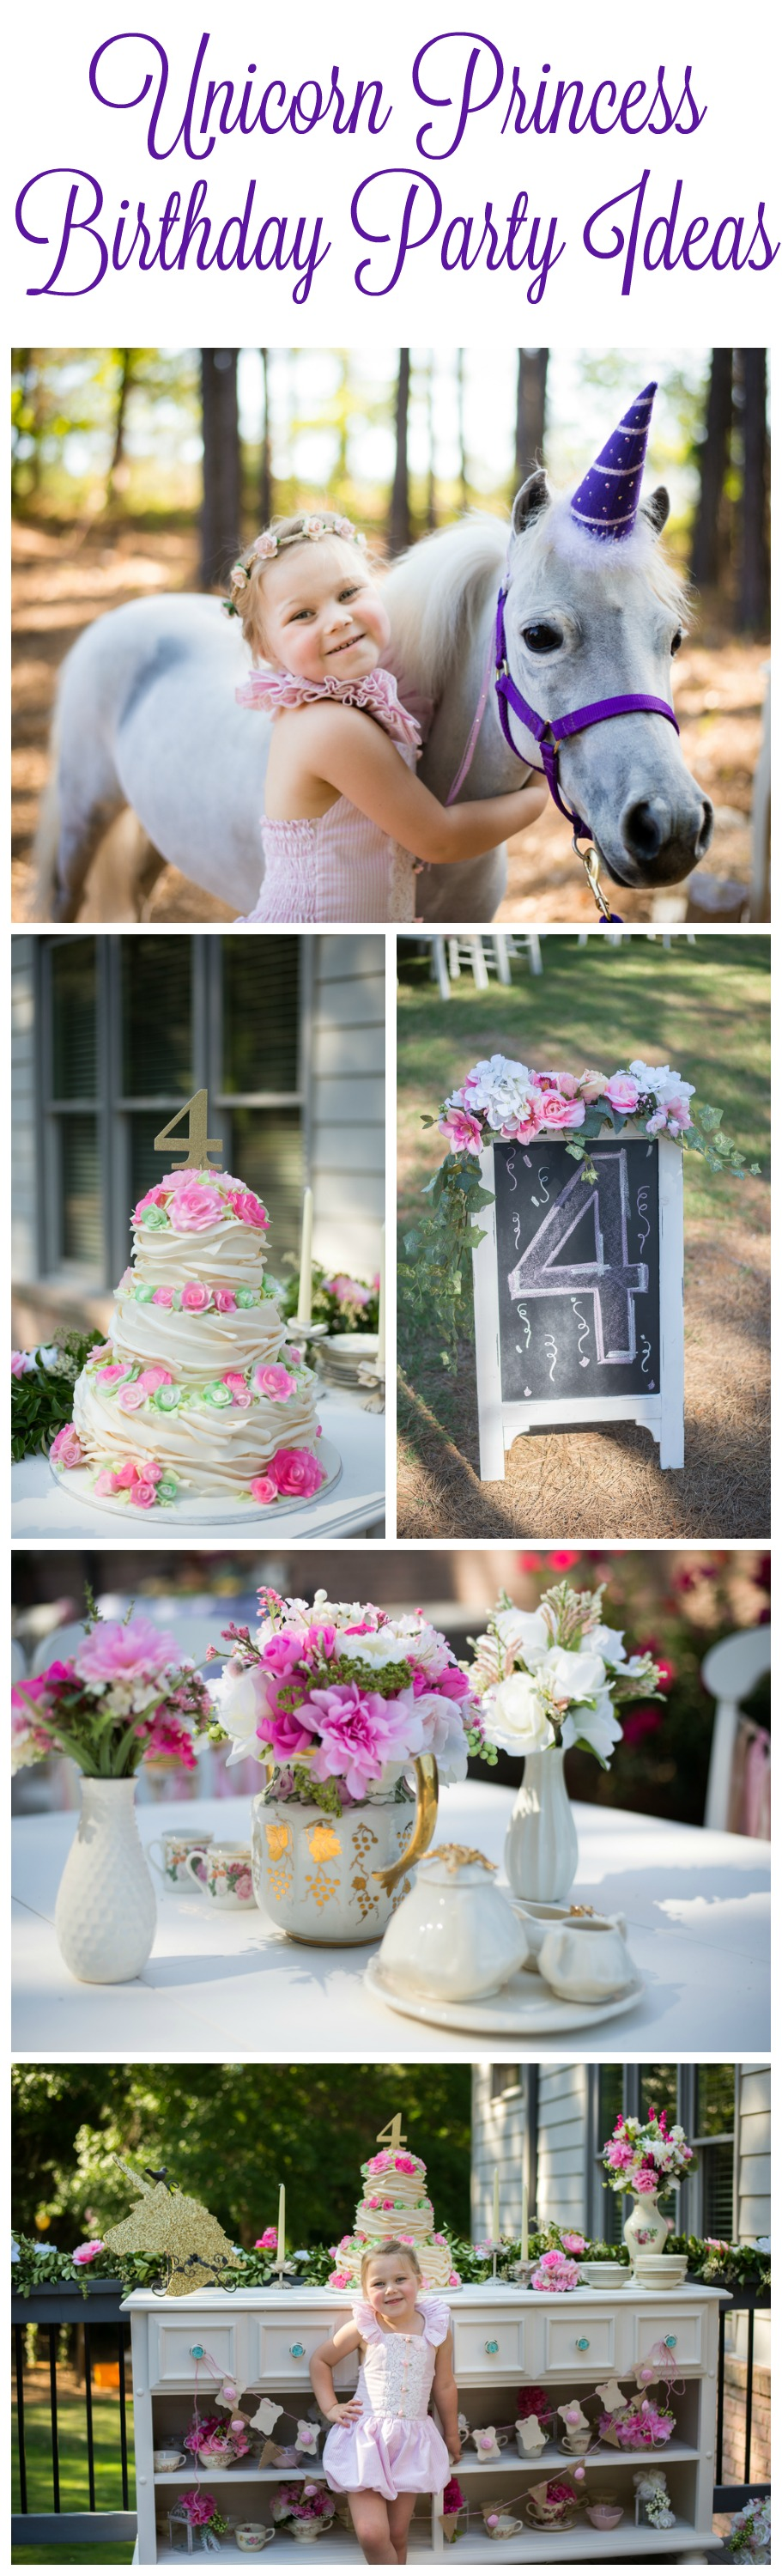 Whimsical Princess Unicorn Party Rustic Baby Chic